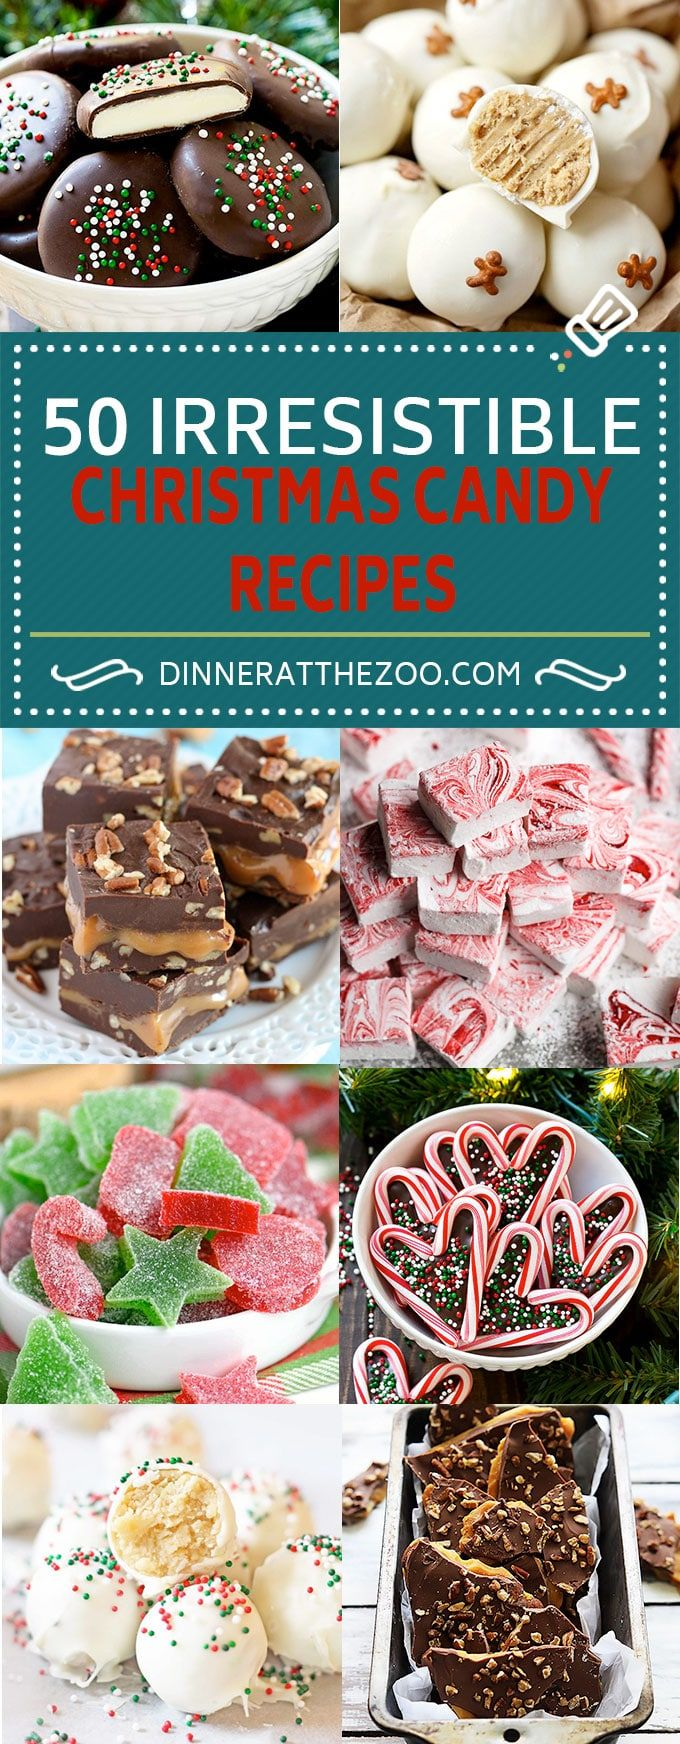 50 Irresistible Christmas Candy Recipes   Candy Recipes   Fudge Recipes   Truffle Recipes   Caramel Recipes